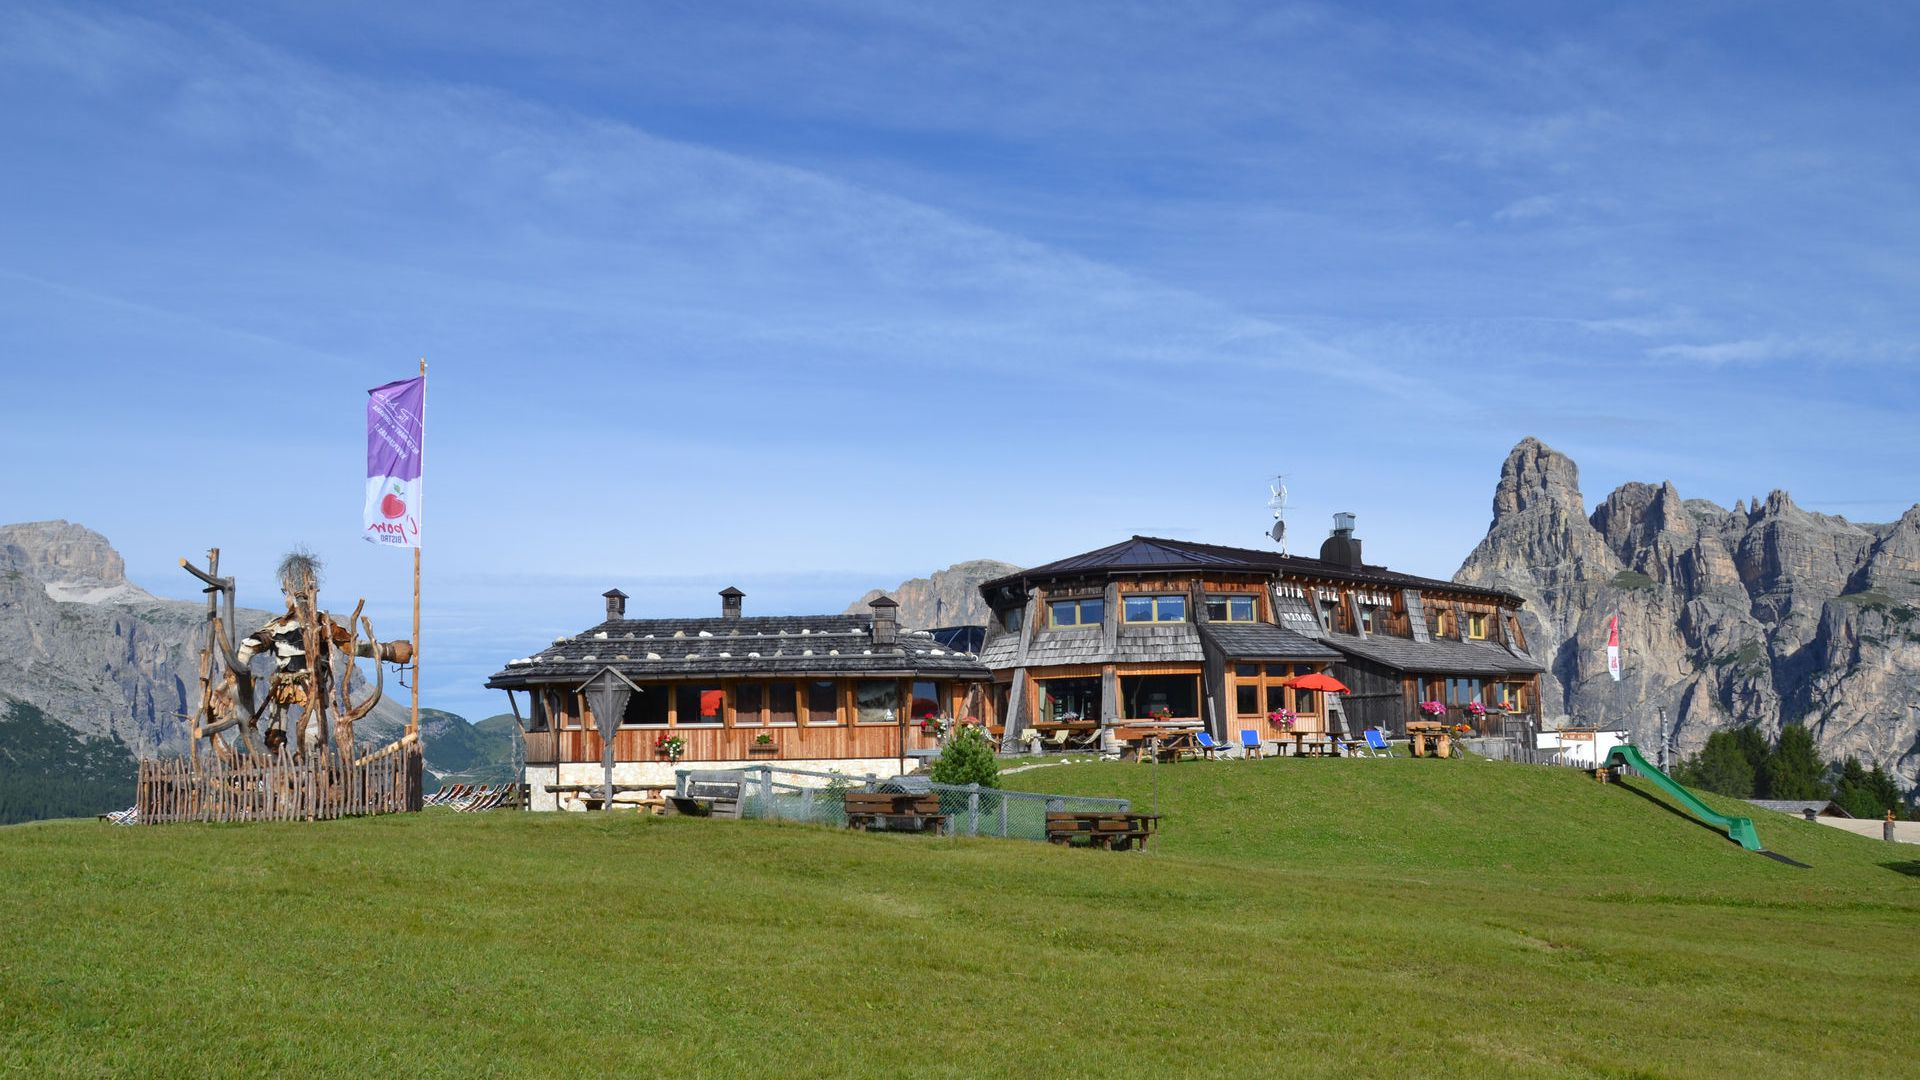 Image: the story of the Piz Arlara Alpine Restaurant